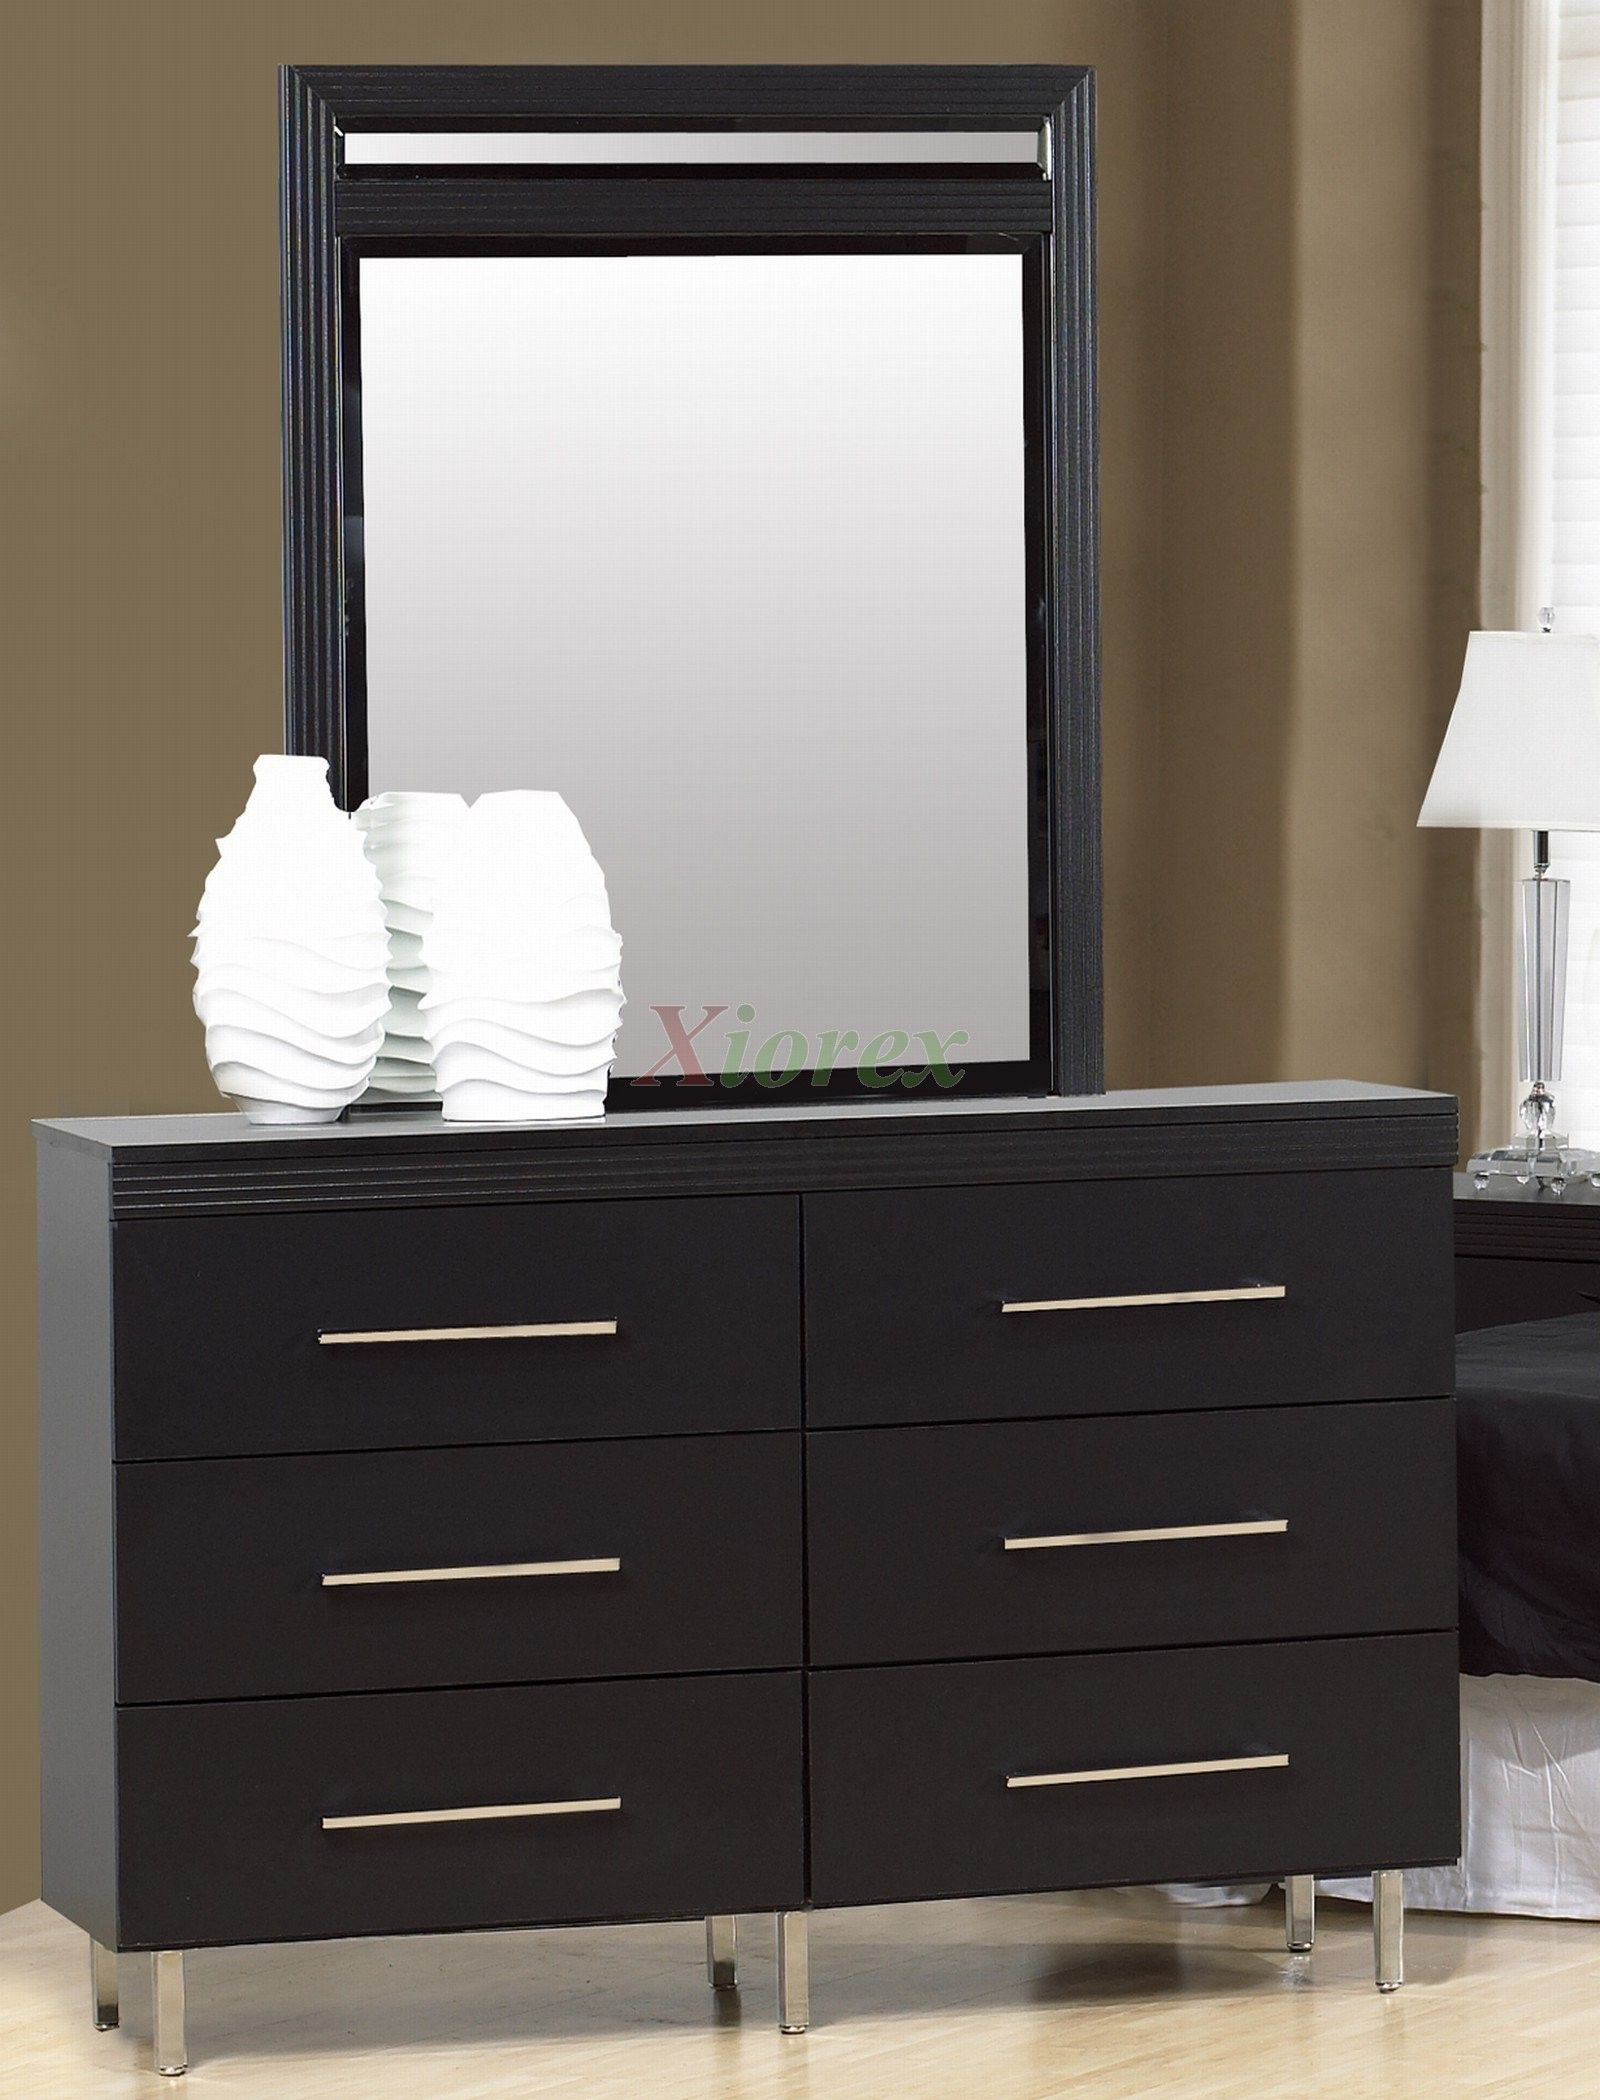 With Its Sleek Curved Lines And Unique Modern Design Elements The Eclectic Cascade Merlot Dresser Mirror Set Has A Stunning Visu Pinteres